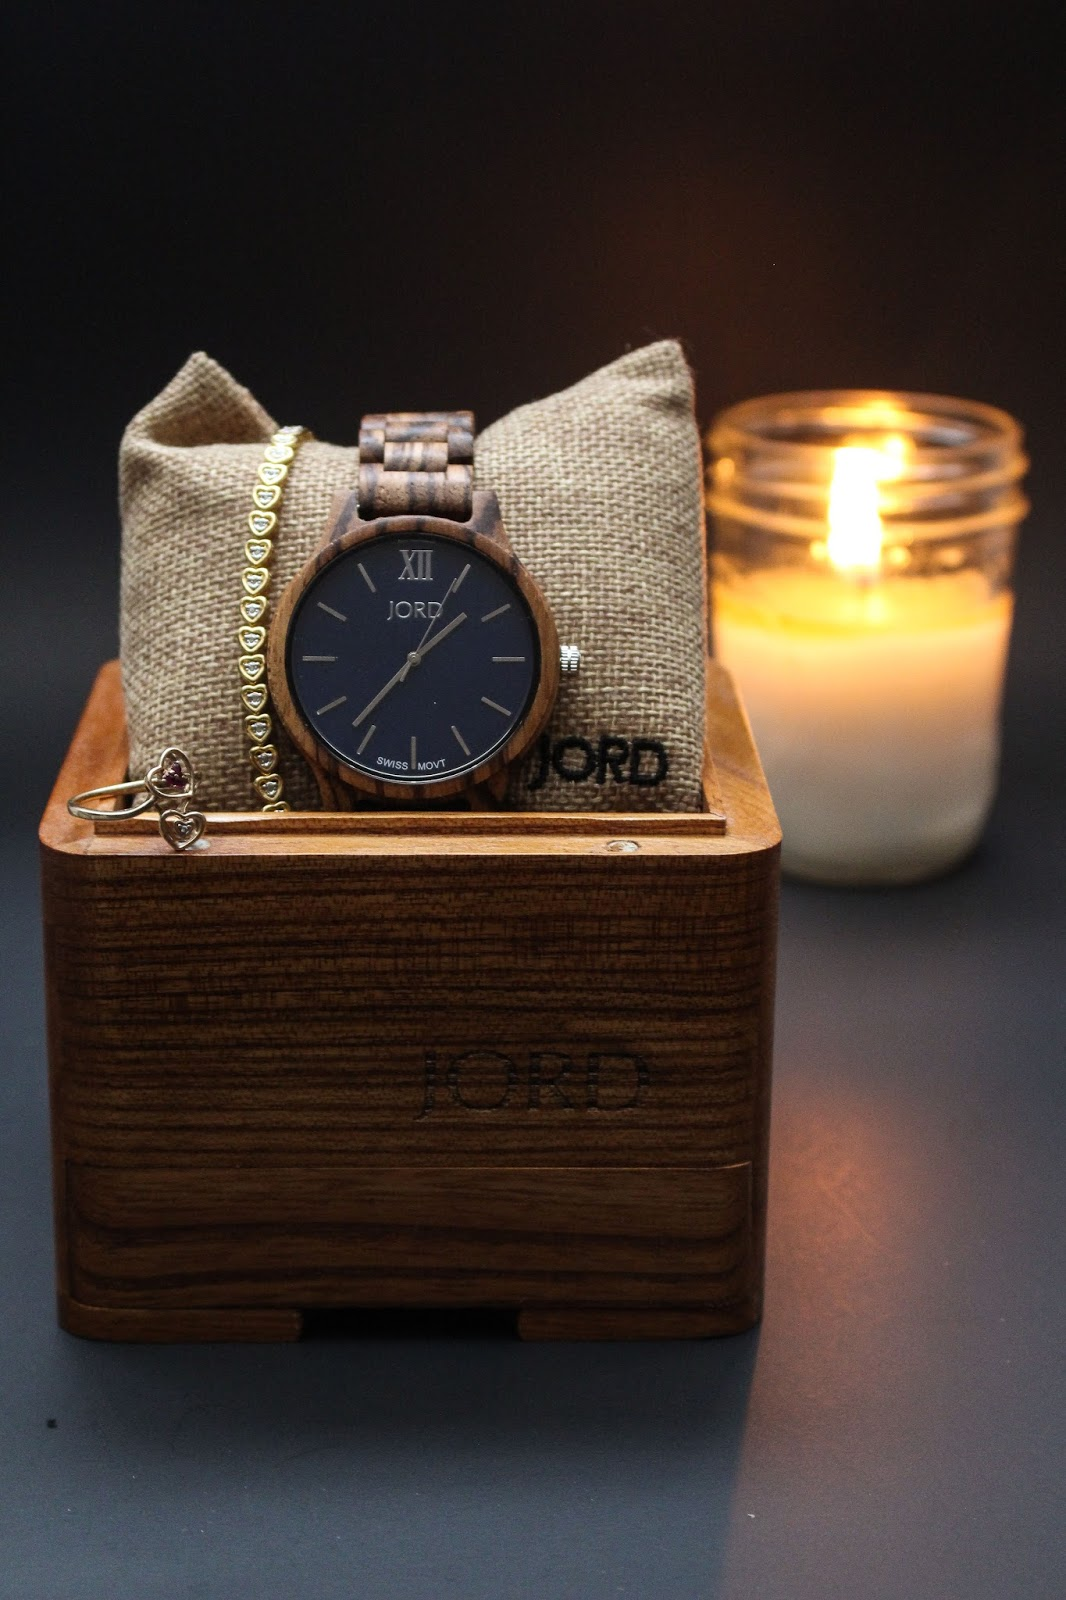 jord, wood watch, jord wood watches, frankie series, valentine's day gifts, men's watch, women's watch, unique watches, unique gift ideas